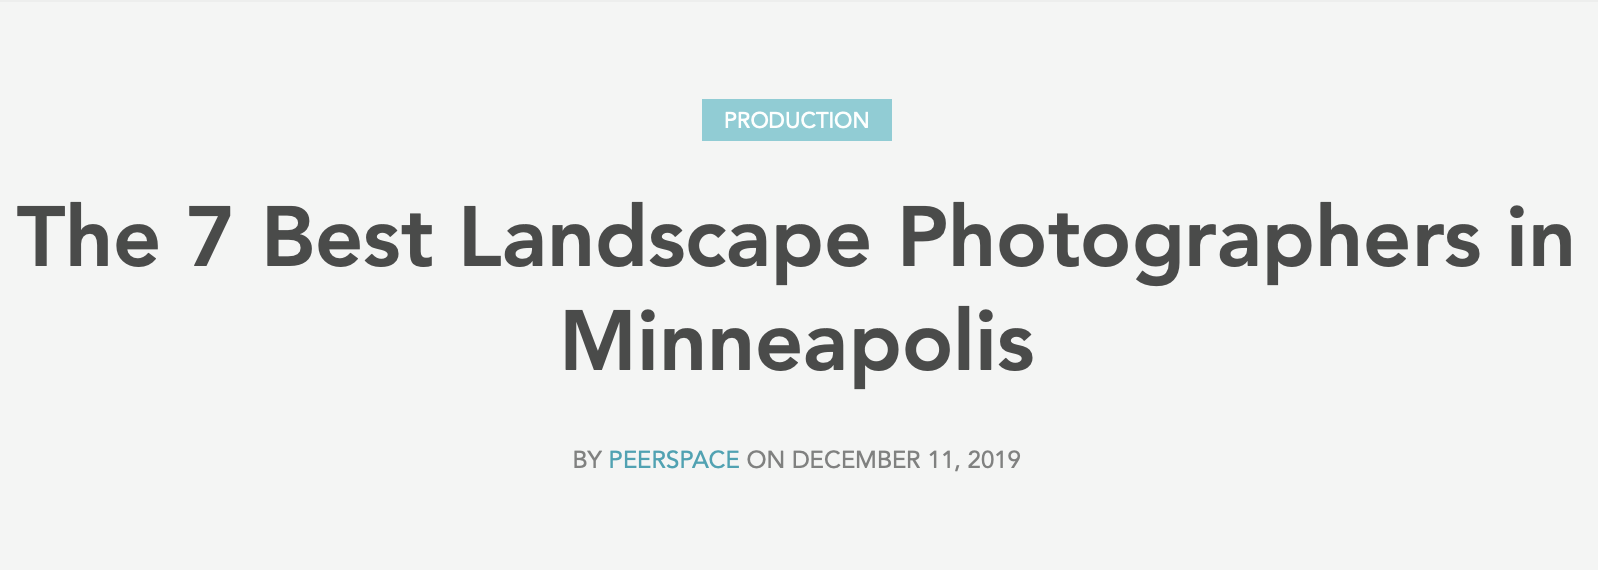 The 7 Best Landscape Photographers in Minneapolis